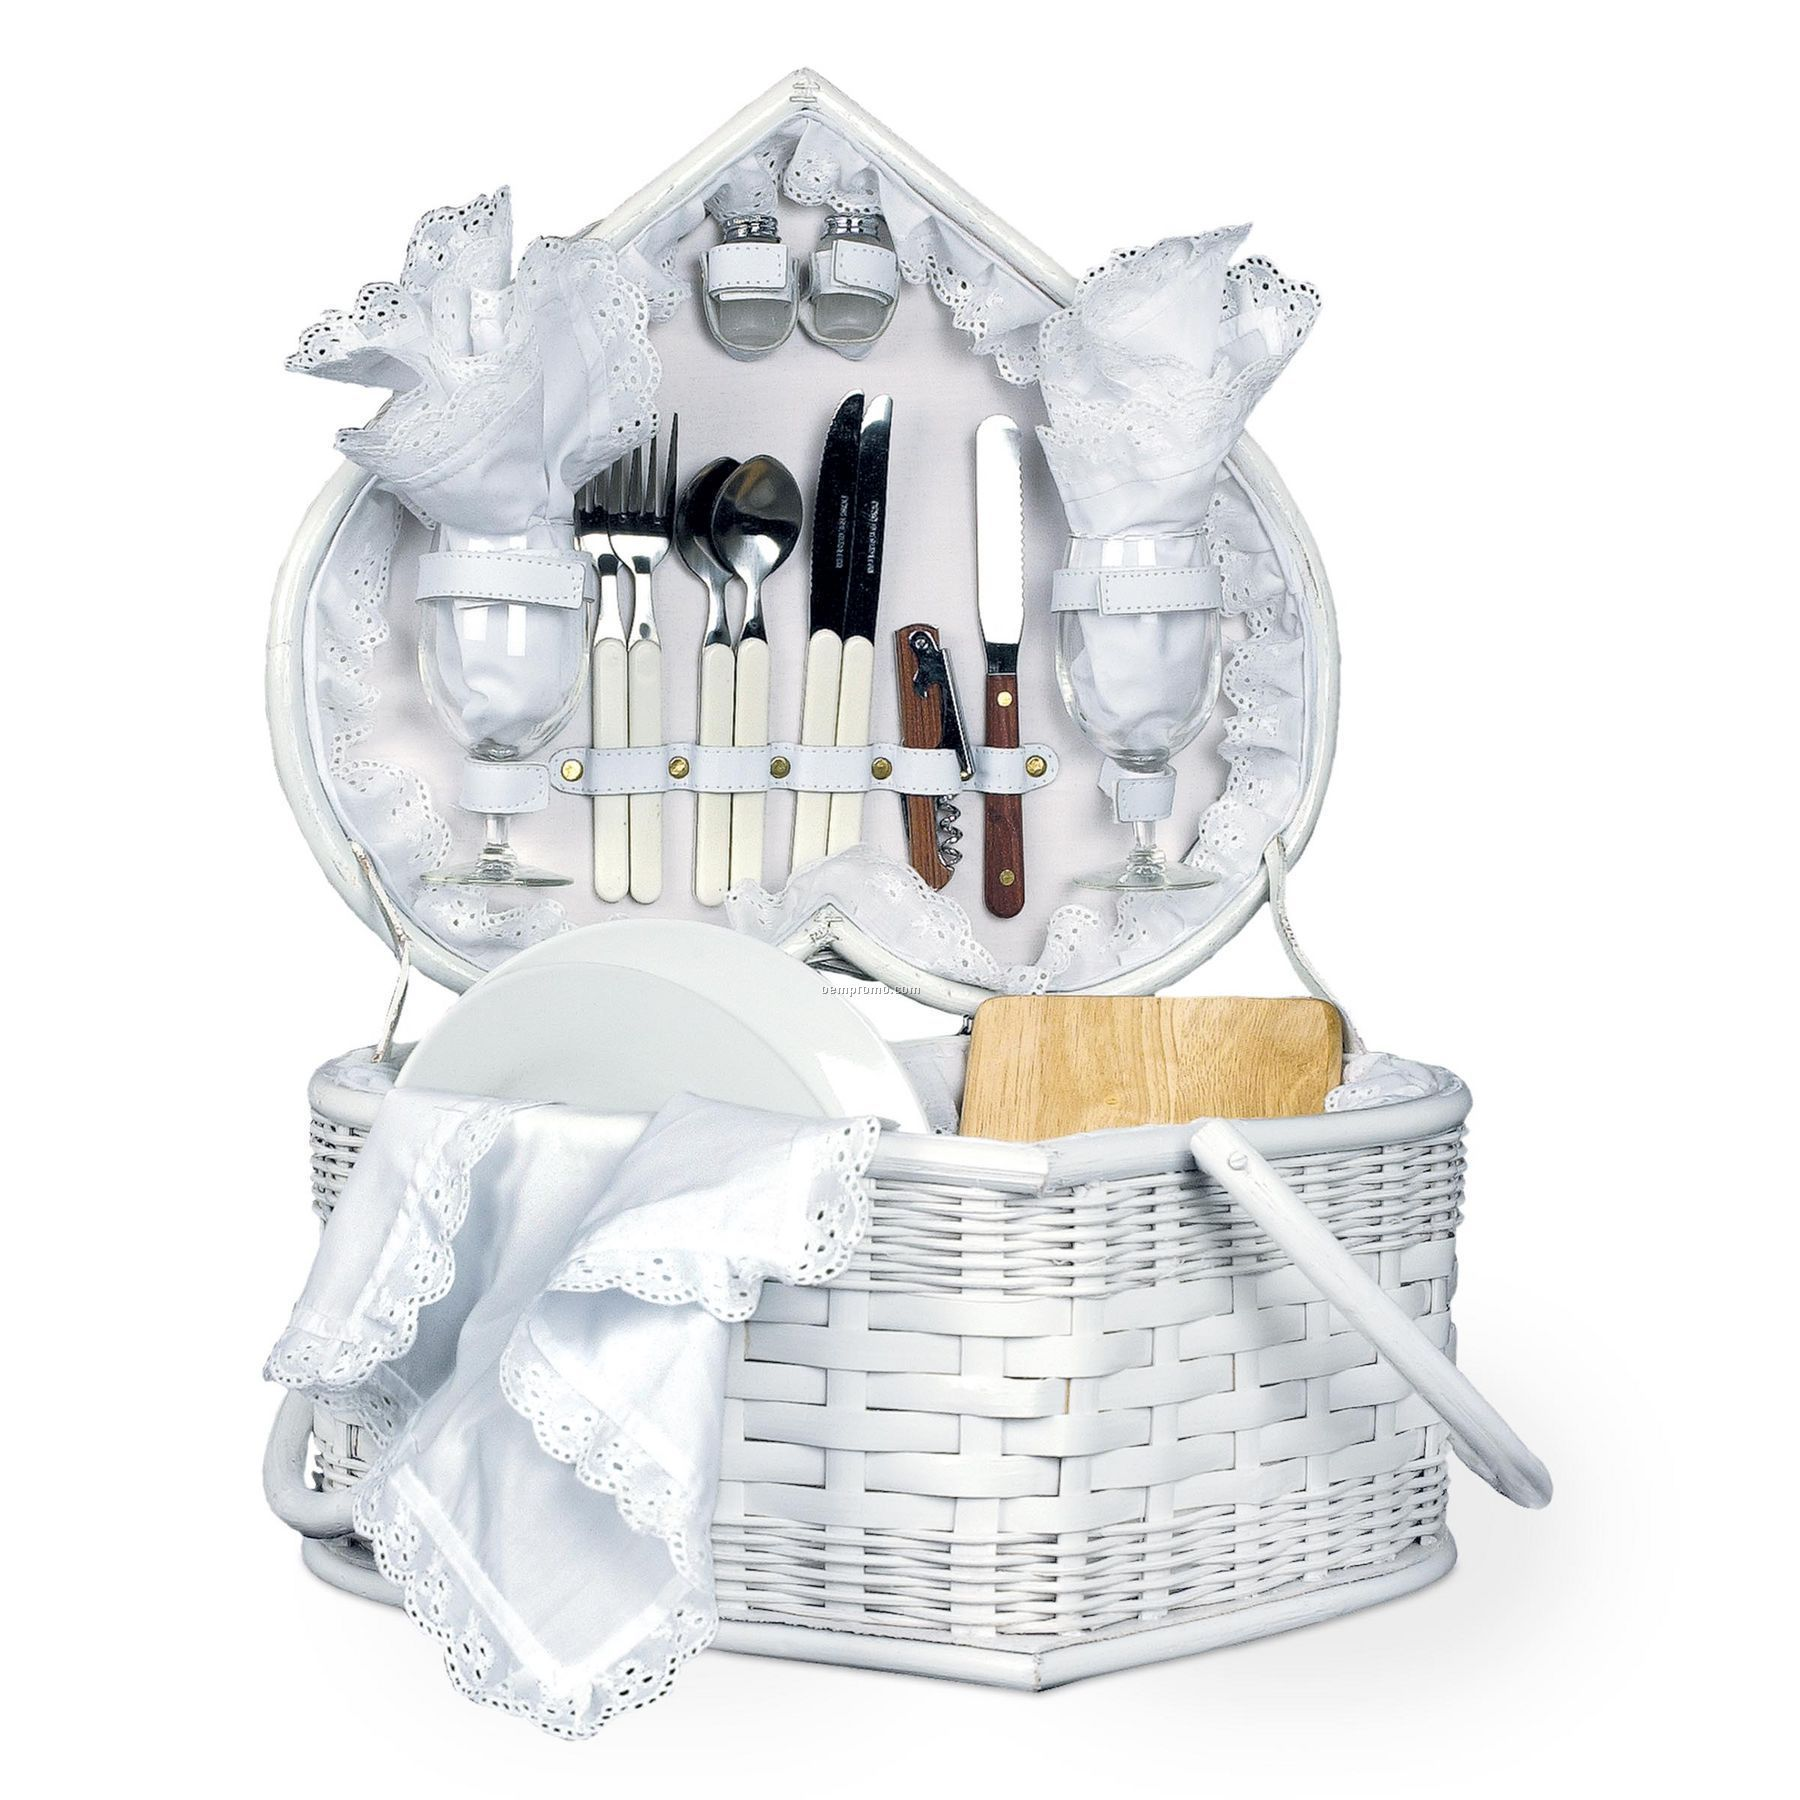 White Picnic Basket W/ Deluxe Service For 2 | Fete Columbus ...